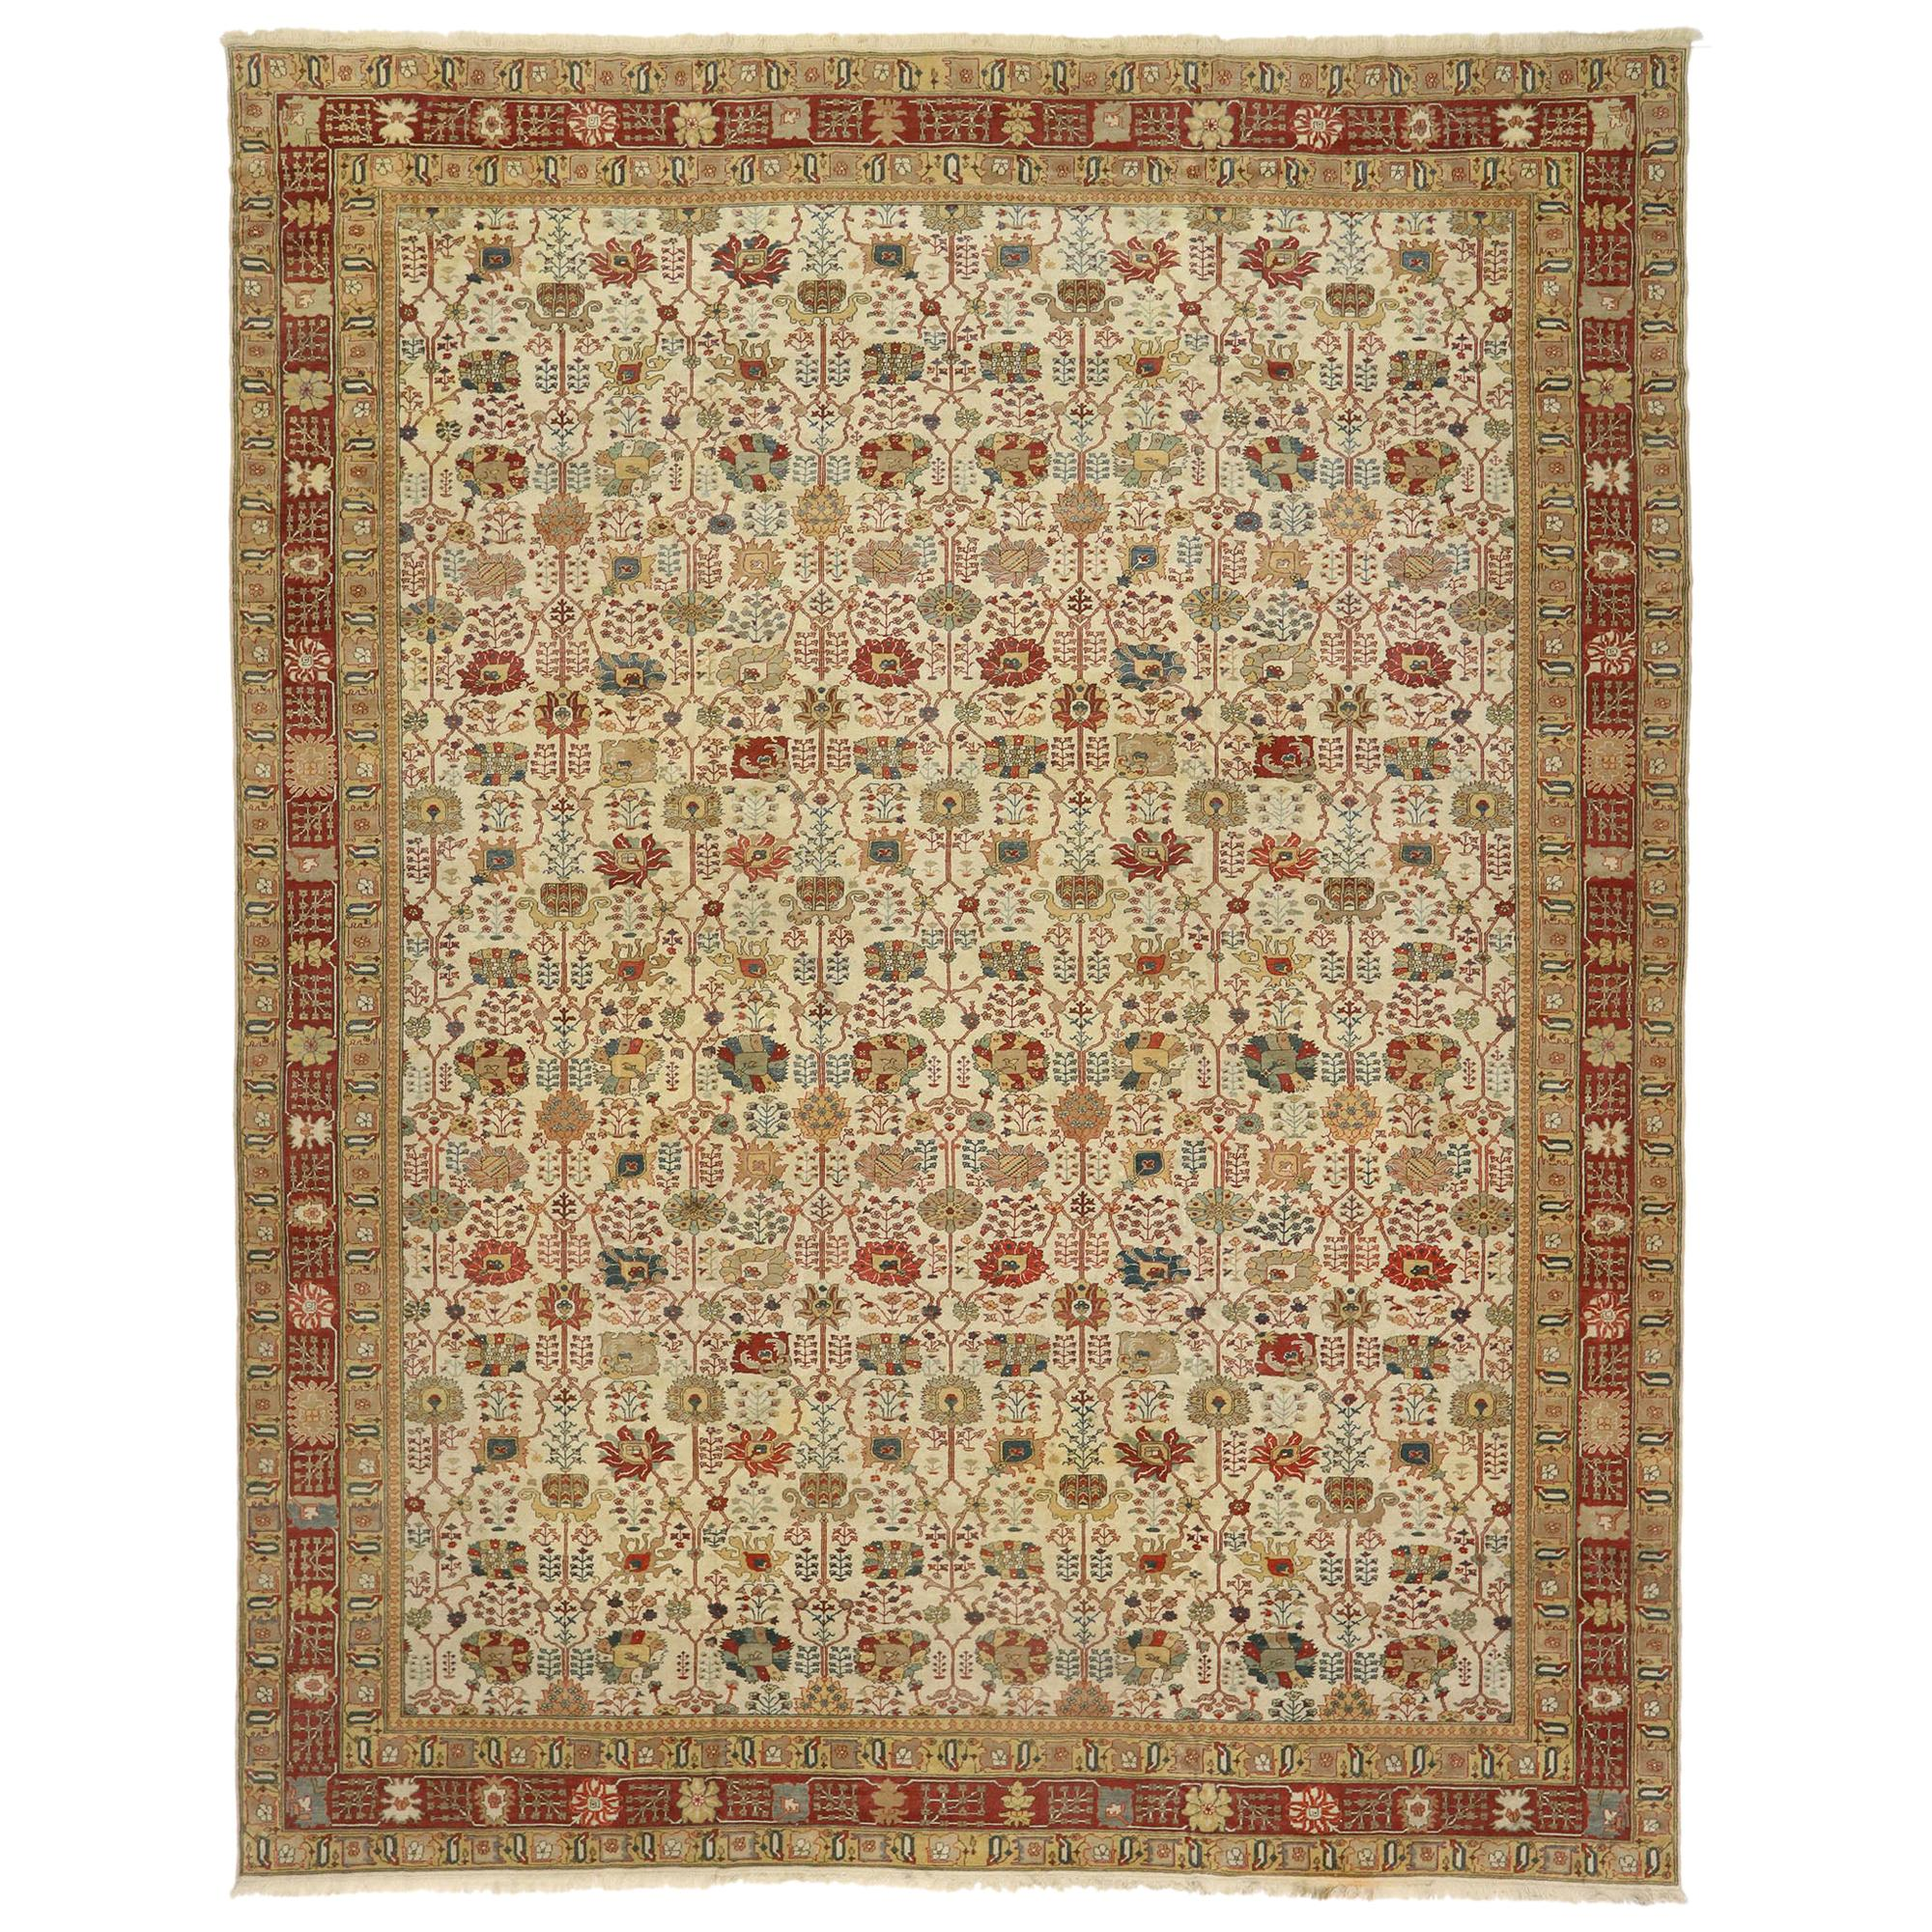 Vintage Turkish Rug with Arts & Crafts Style Inspired by William Morris